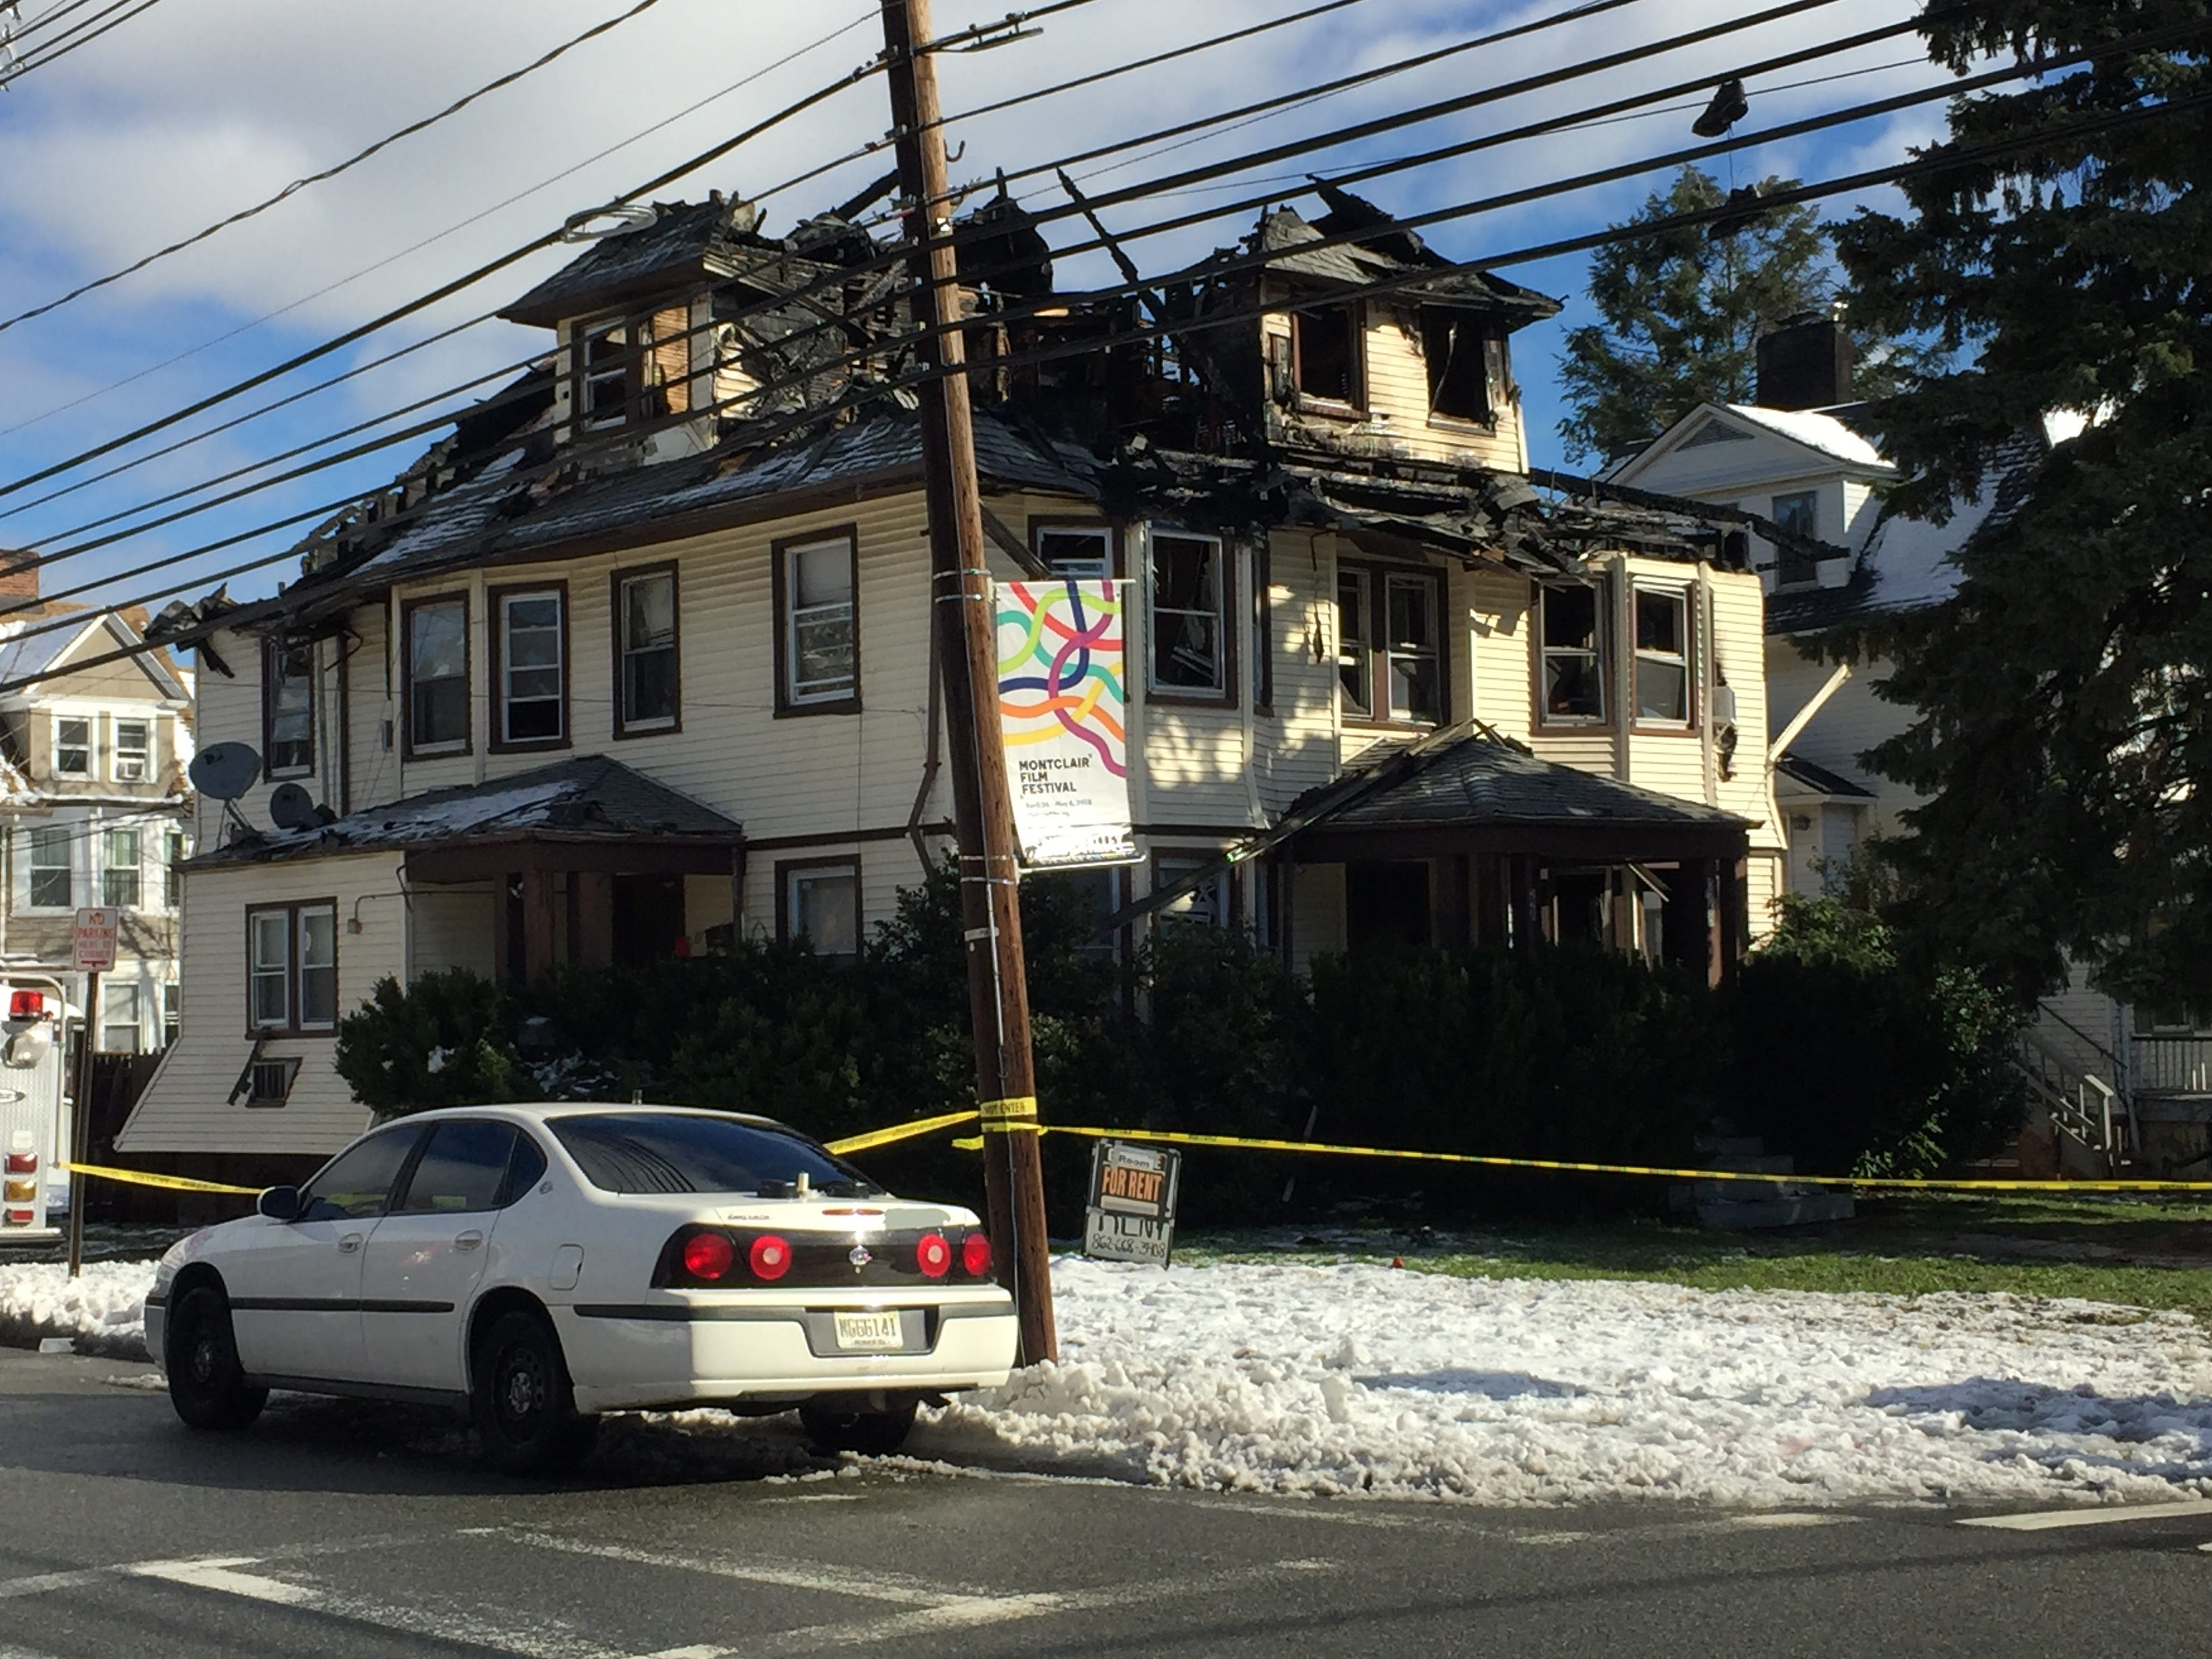 The aftermath of a fire that destroyed a multi-story home on the corner of Walnut Street and Valley Road in Montclair, NJ on Friday, Nov. 16, 2018